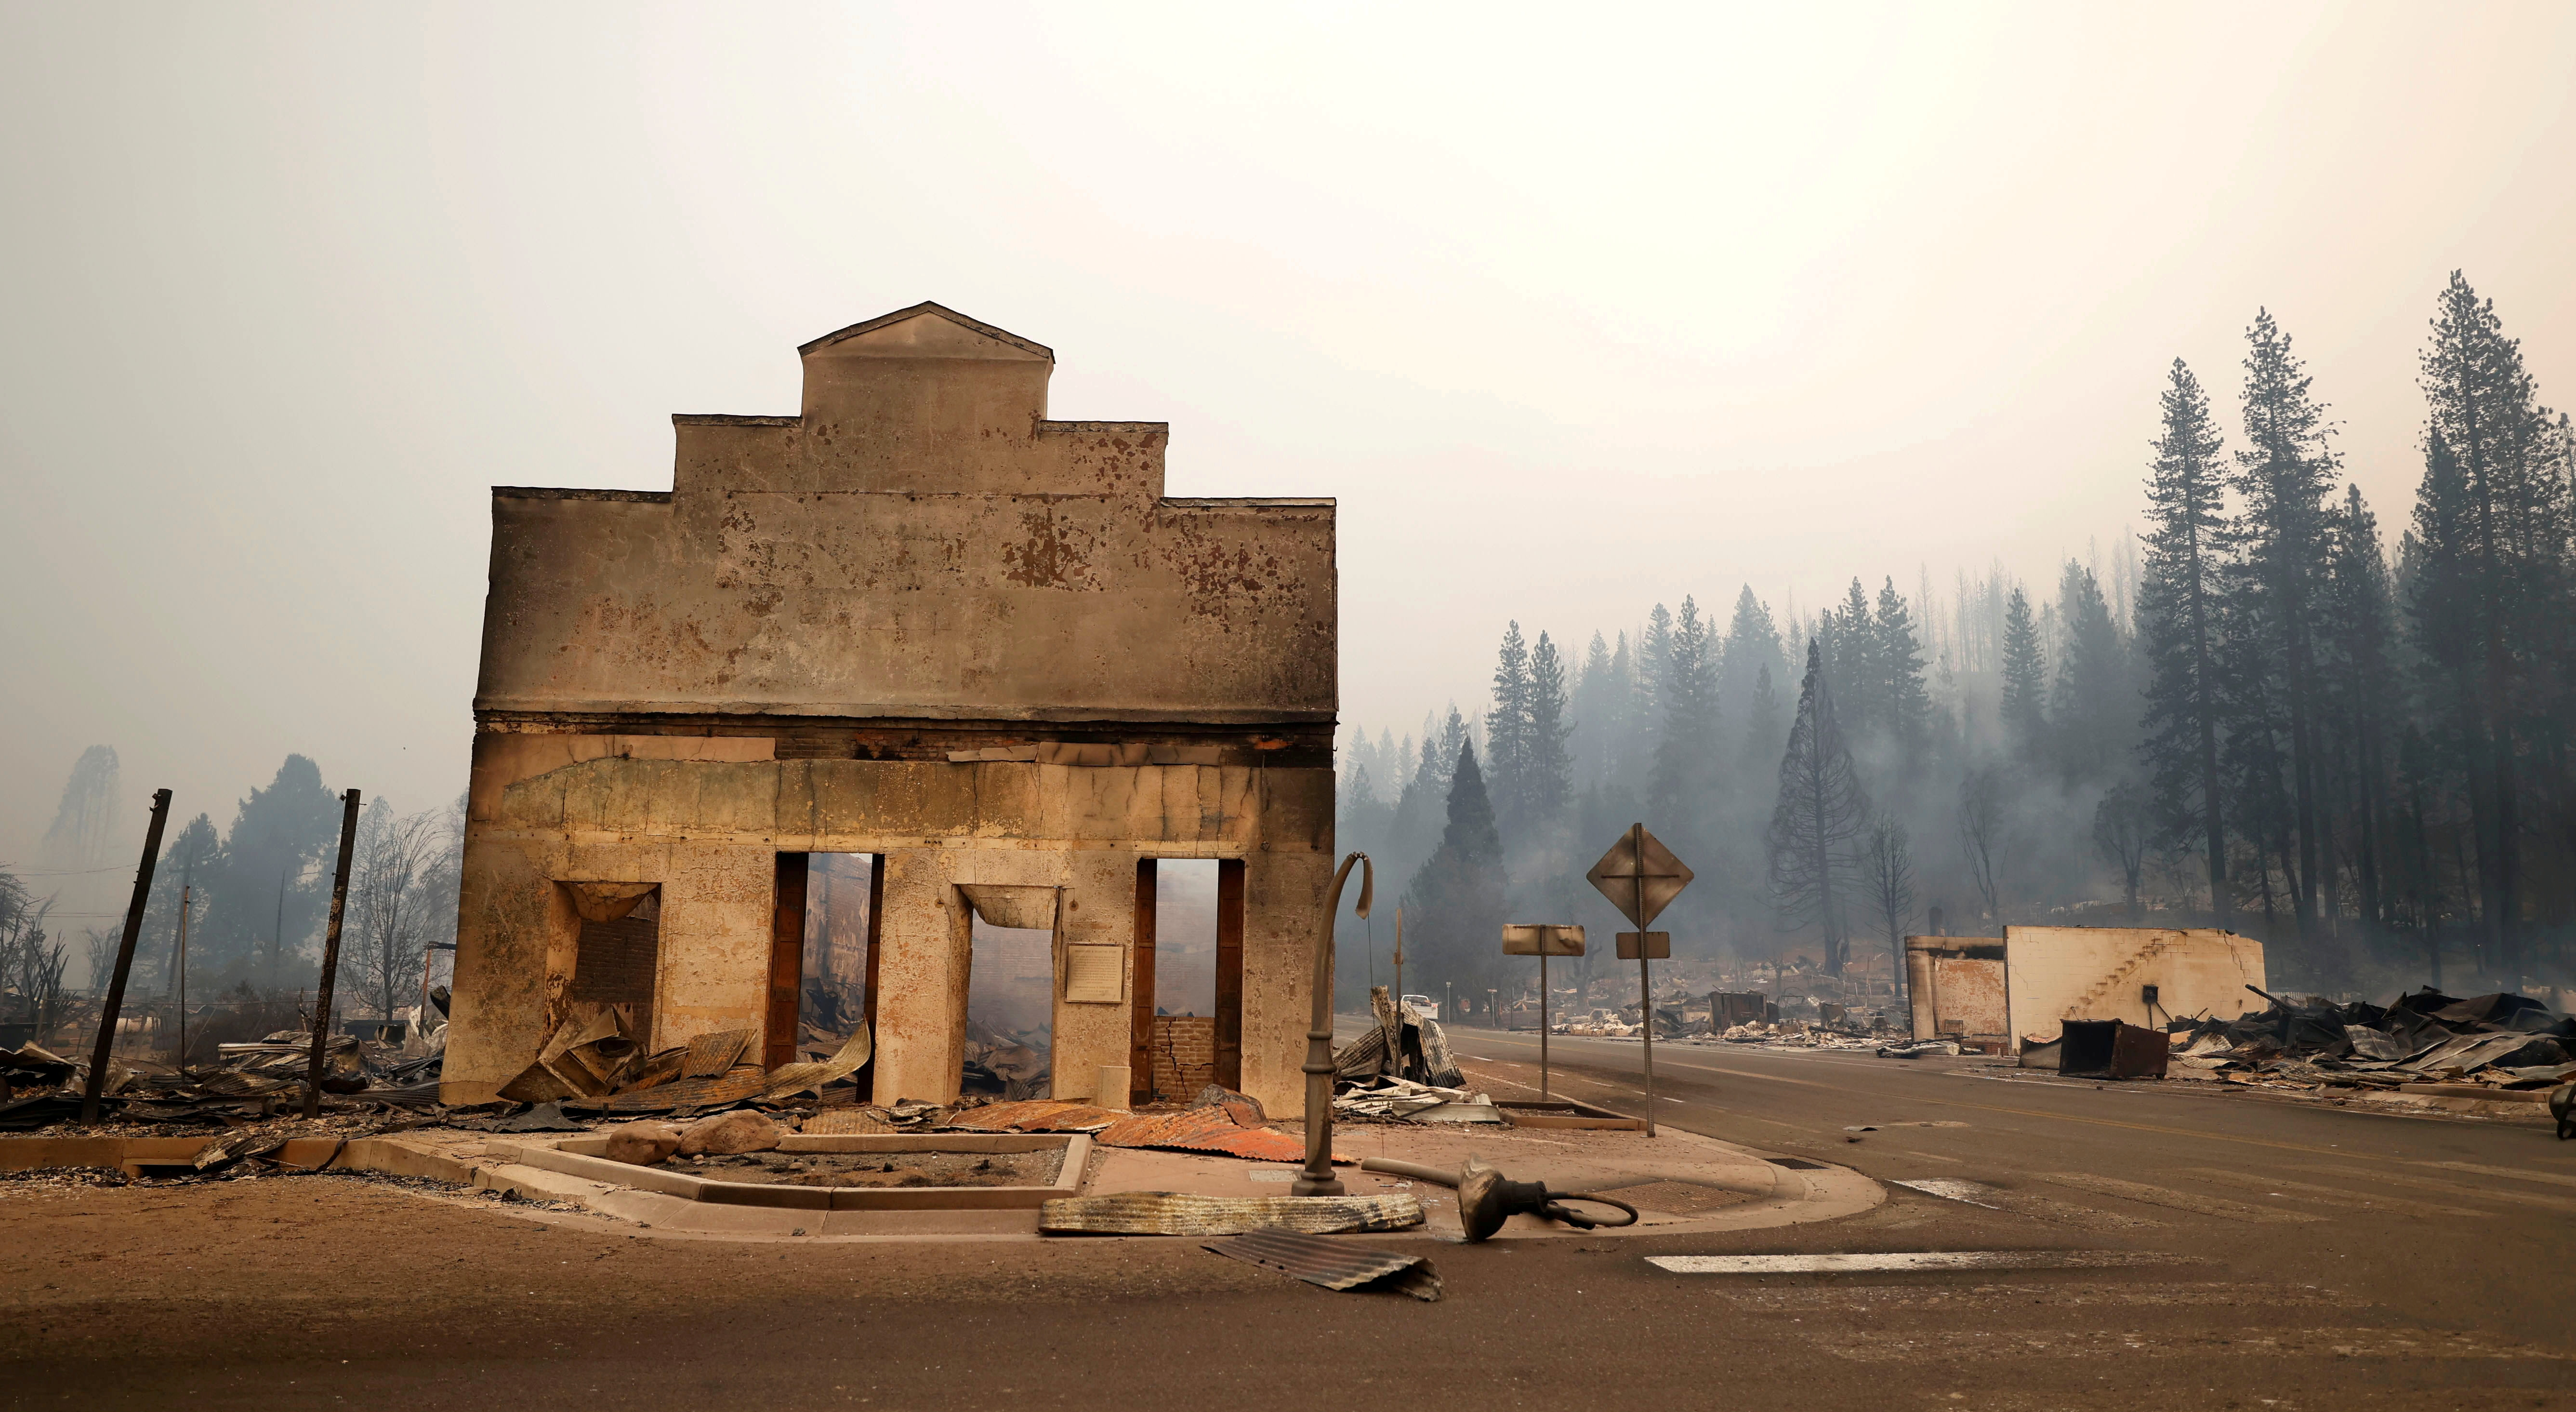 View of a burned out commercial building following the Dixie Fire, a wildfire that tore through the town of Greenville, California, U.S. August 5, 2021. REUTERS/Fred Greaves